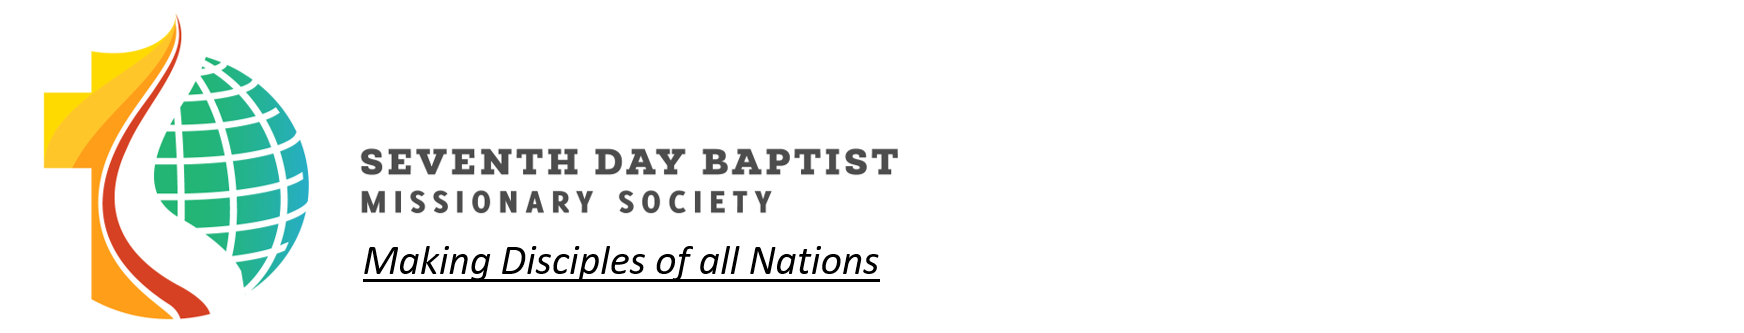 Logo for Seventh Day Baptist Missionary Society